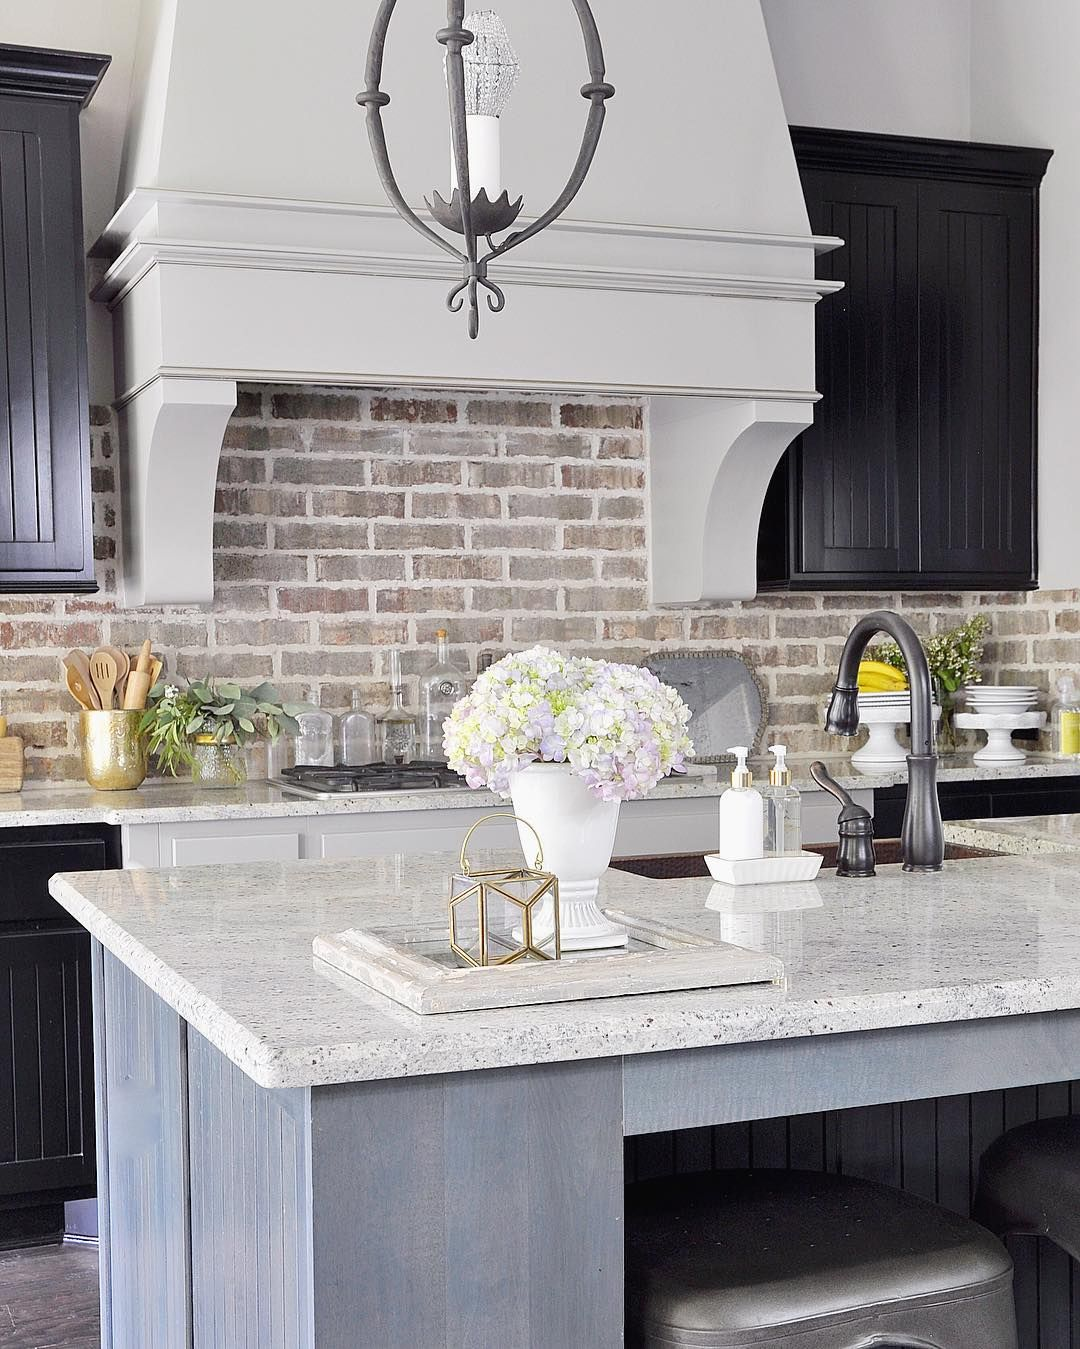 Backsplash Modern Farmhouse Kitchens Rustic Kitchen Farmhouse